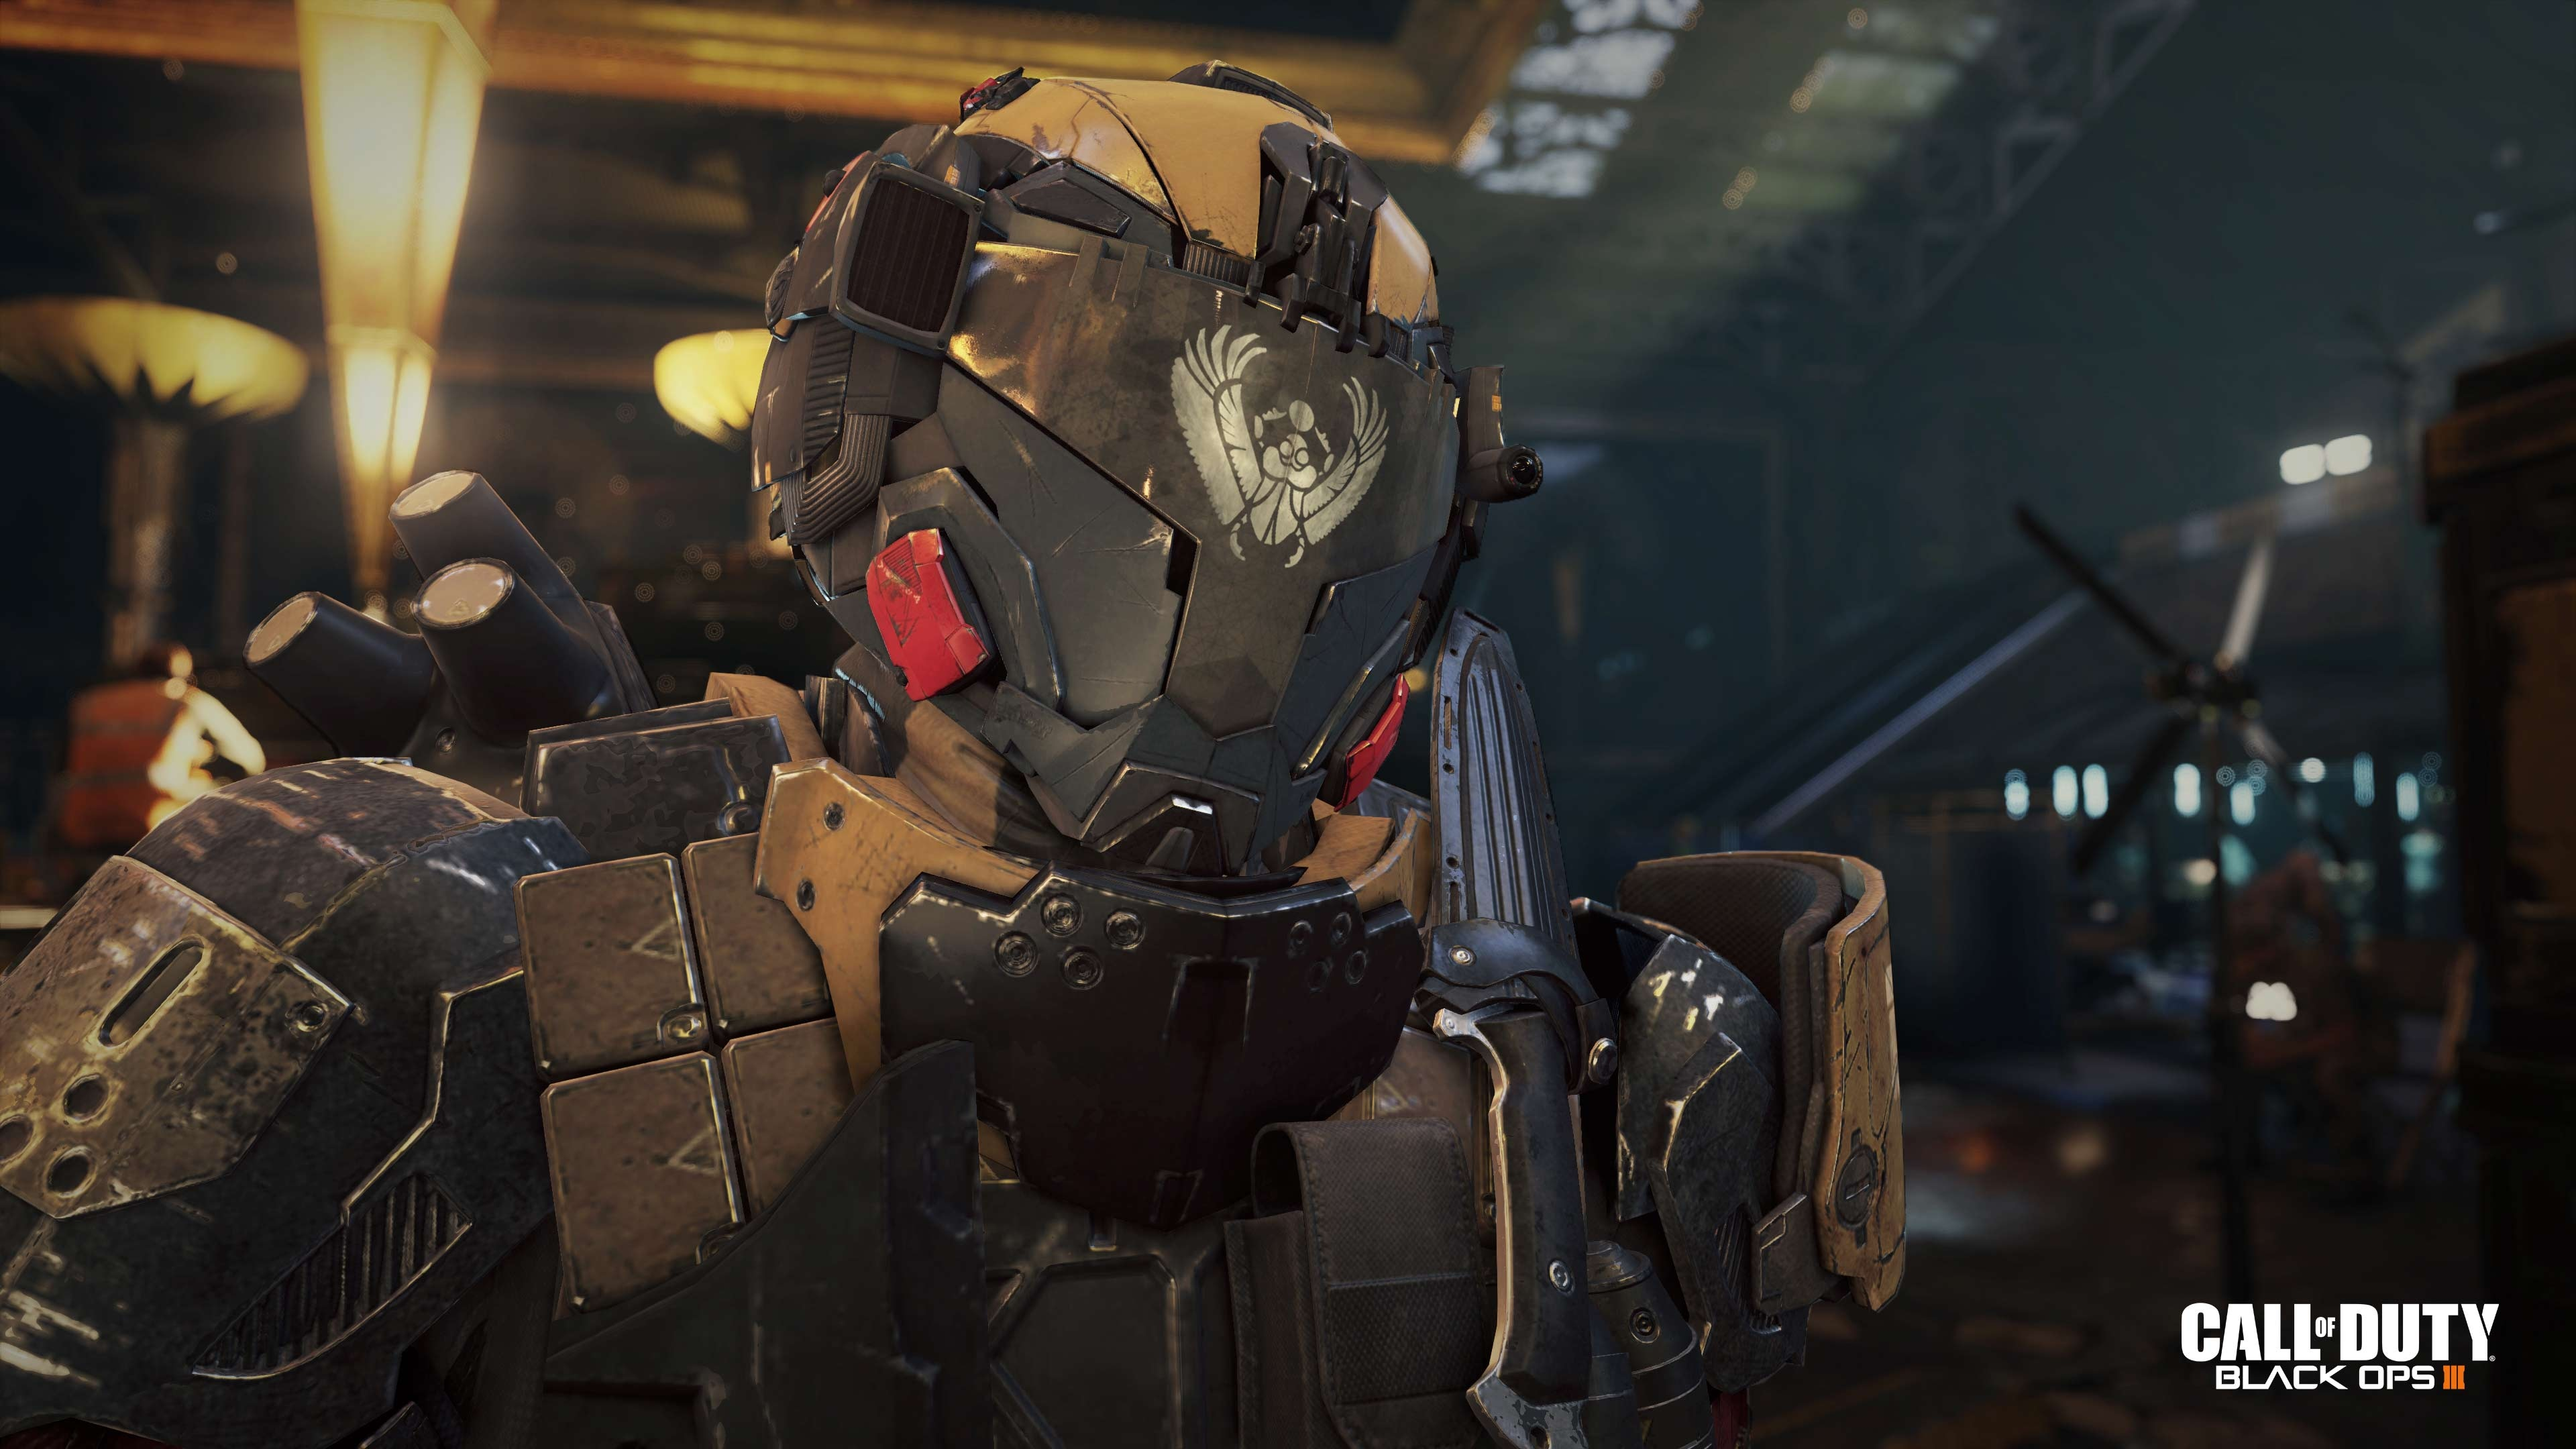 Call Of Duty: Black Ops III - only half the game on the last gen